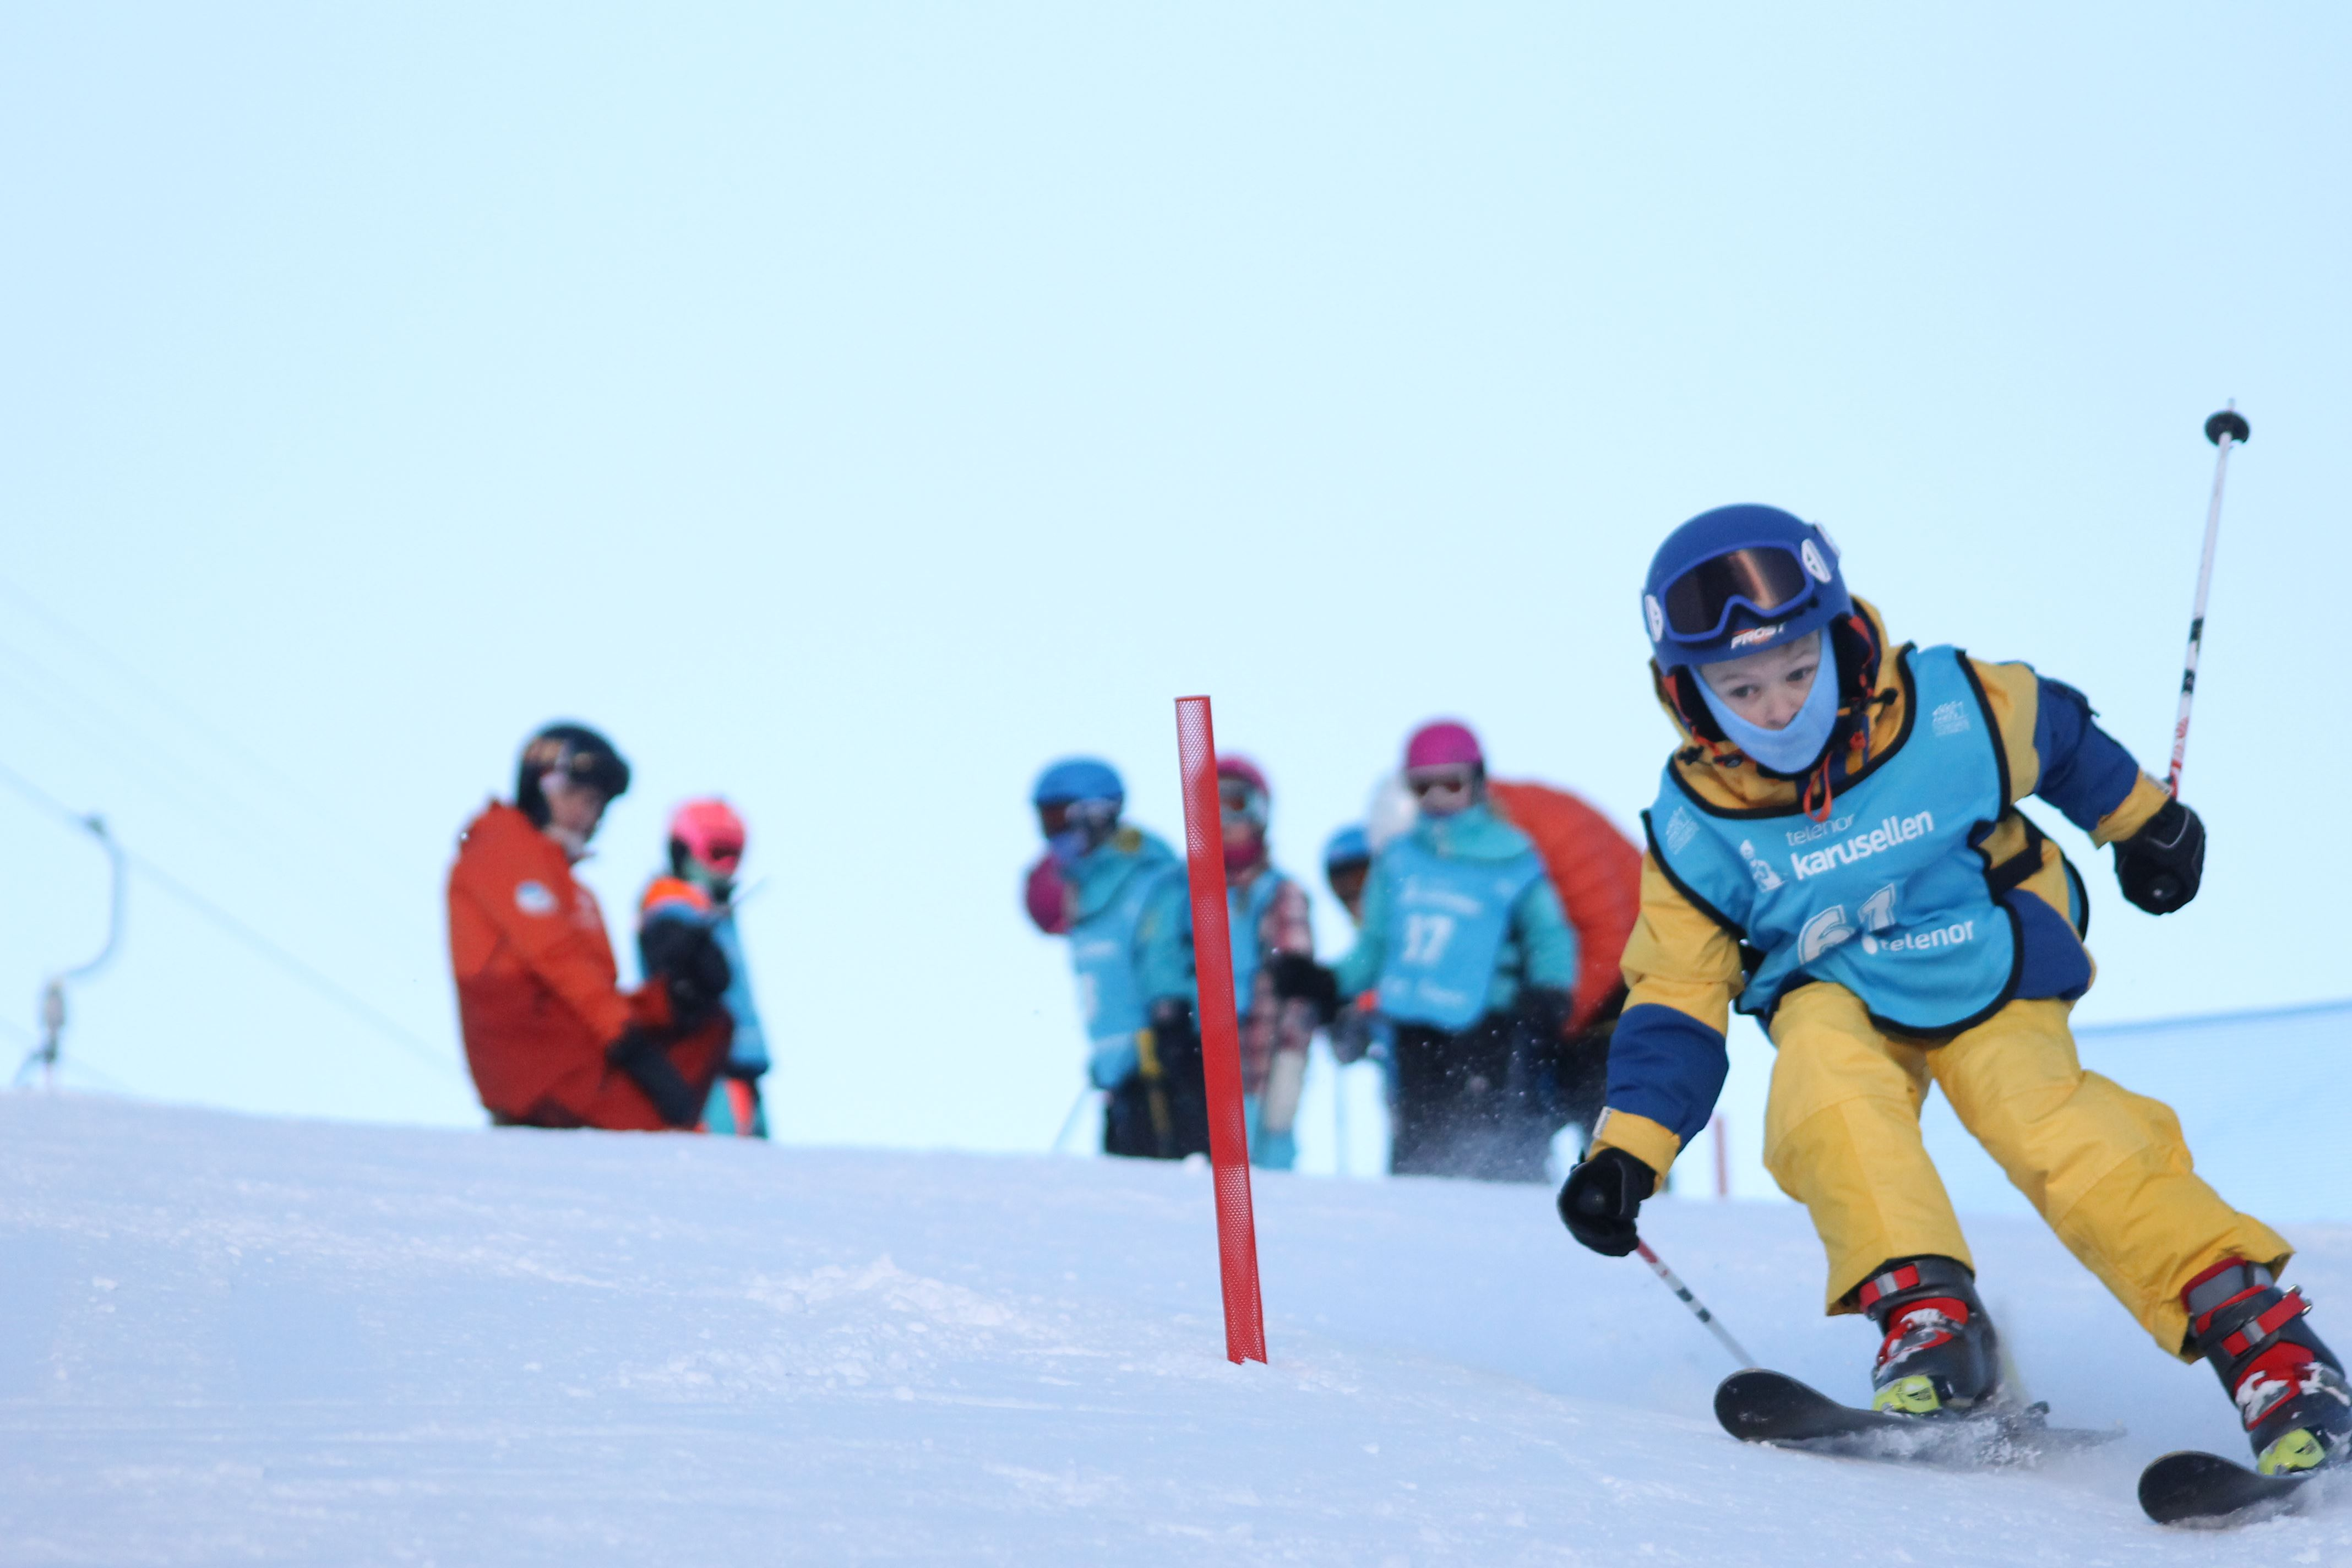 Children ́s ski school - ski